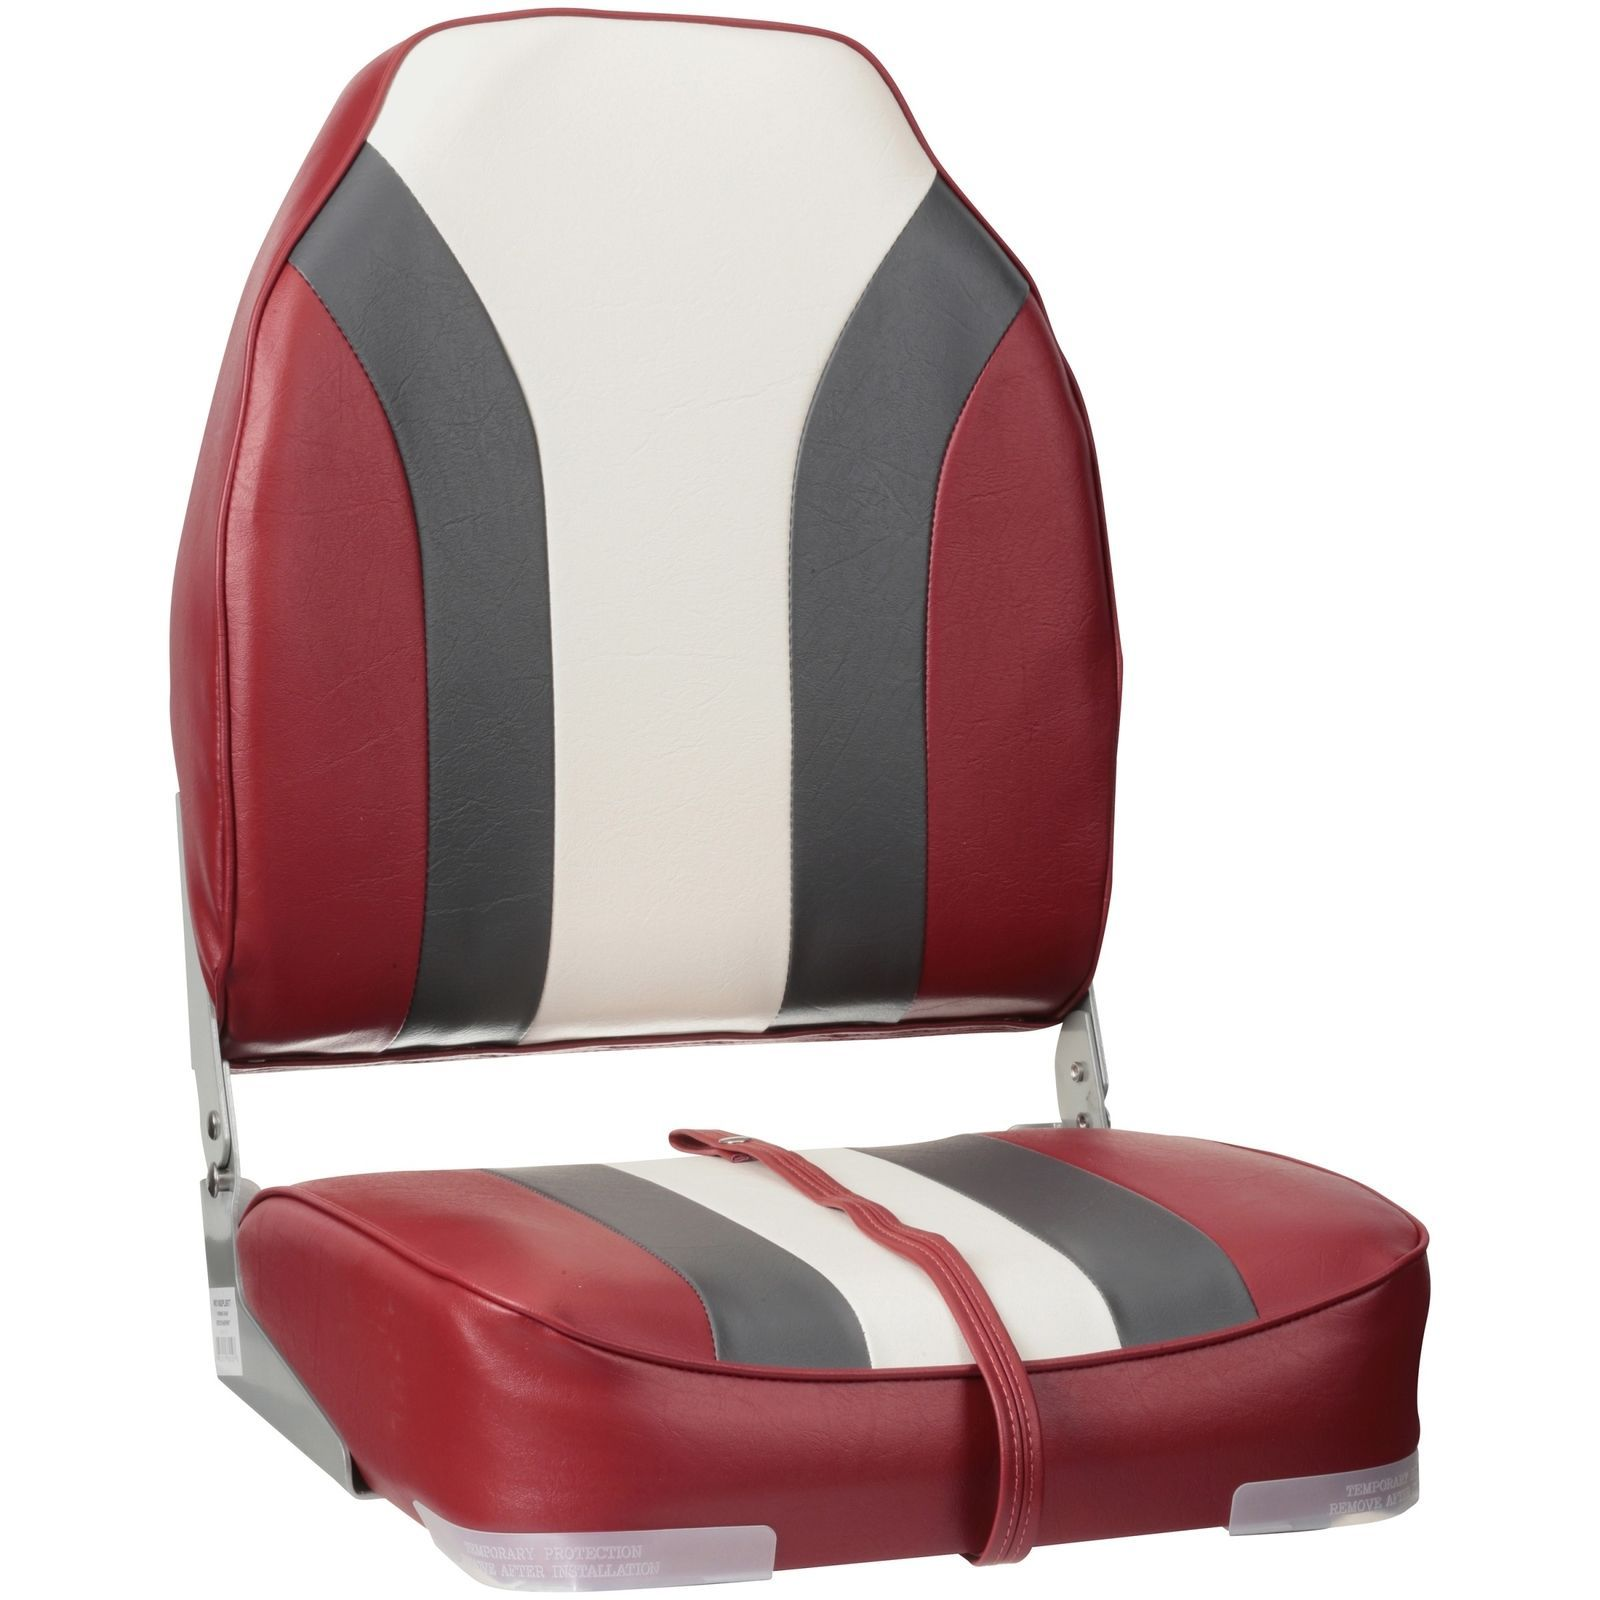 New Wise Heavy Duty Marine Vinyl Fishing Boat Seat Chair Red